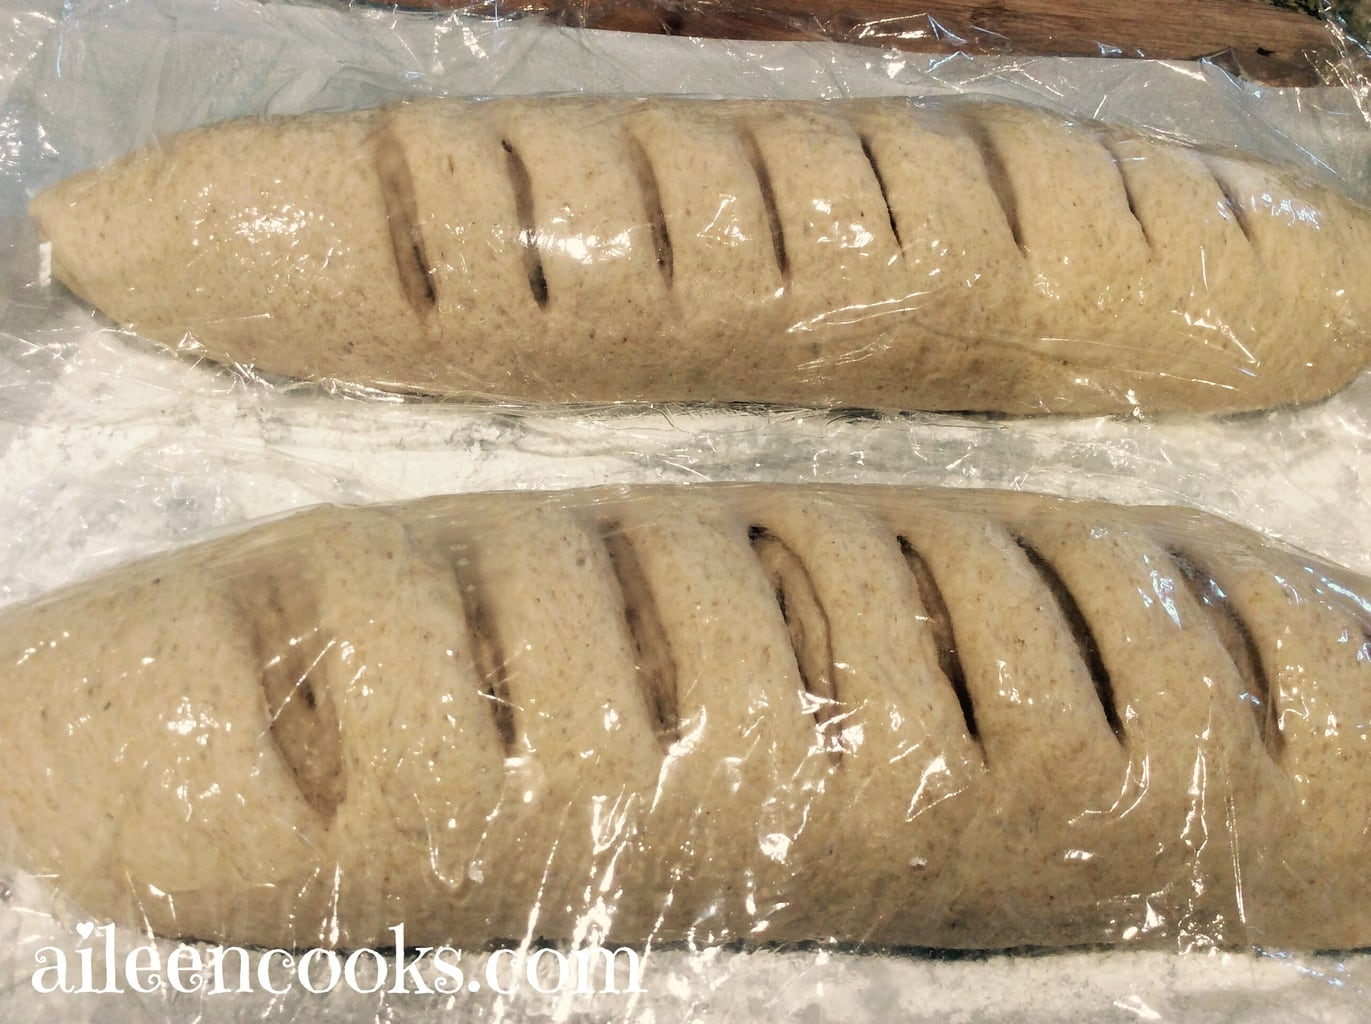 Two loaves of whole wheat french bread ready to be baked.